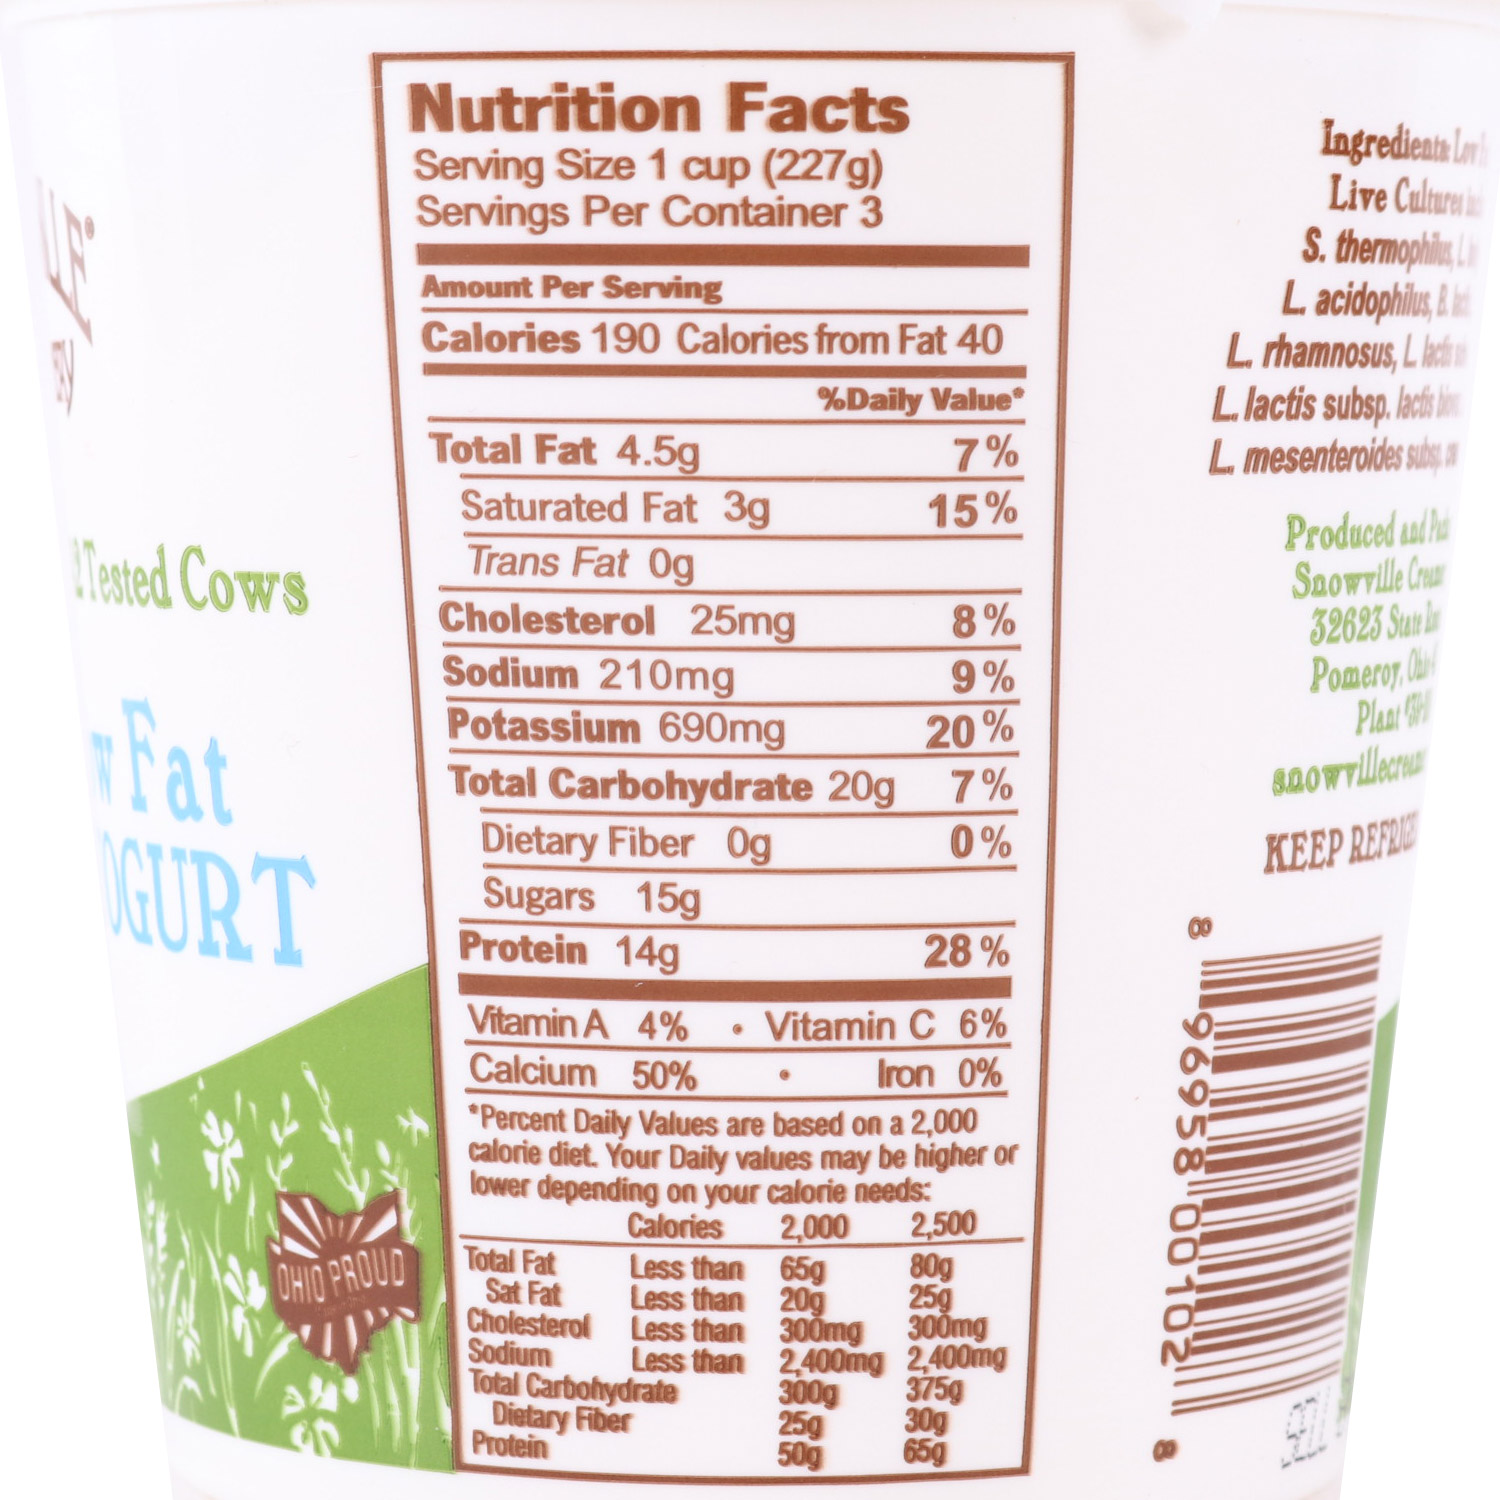 Yogurt, Plain 2%